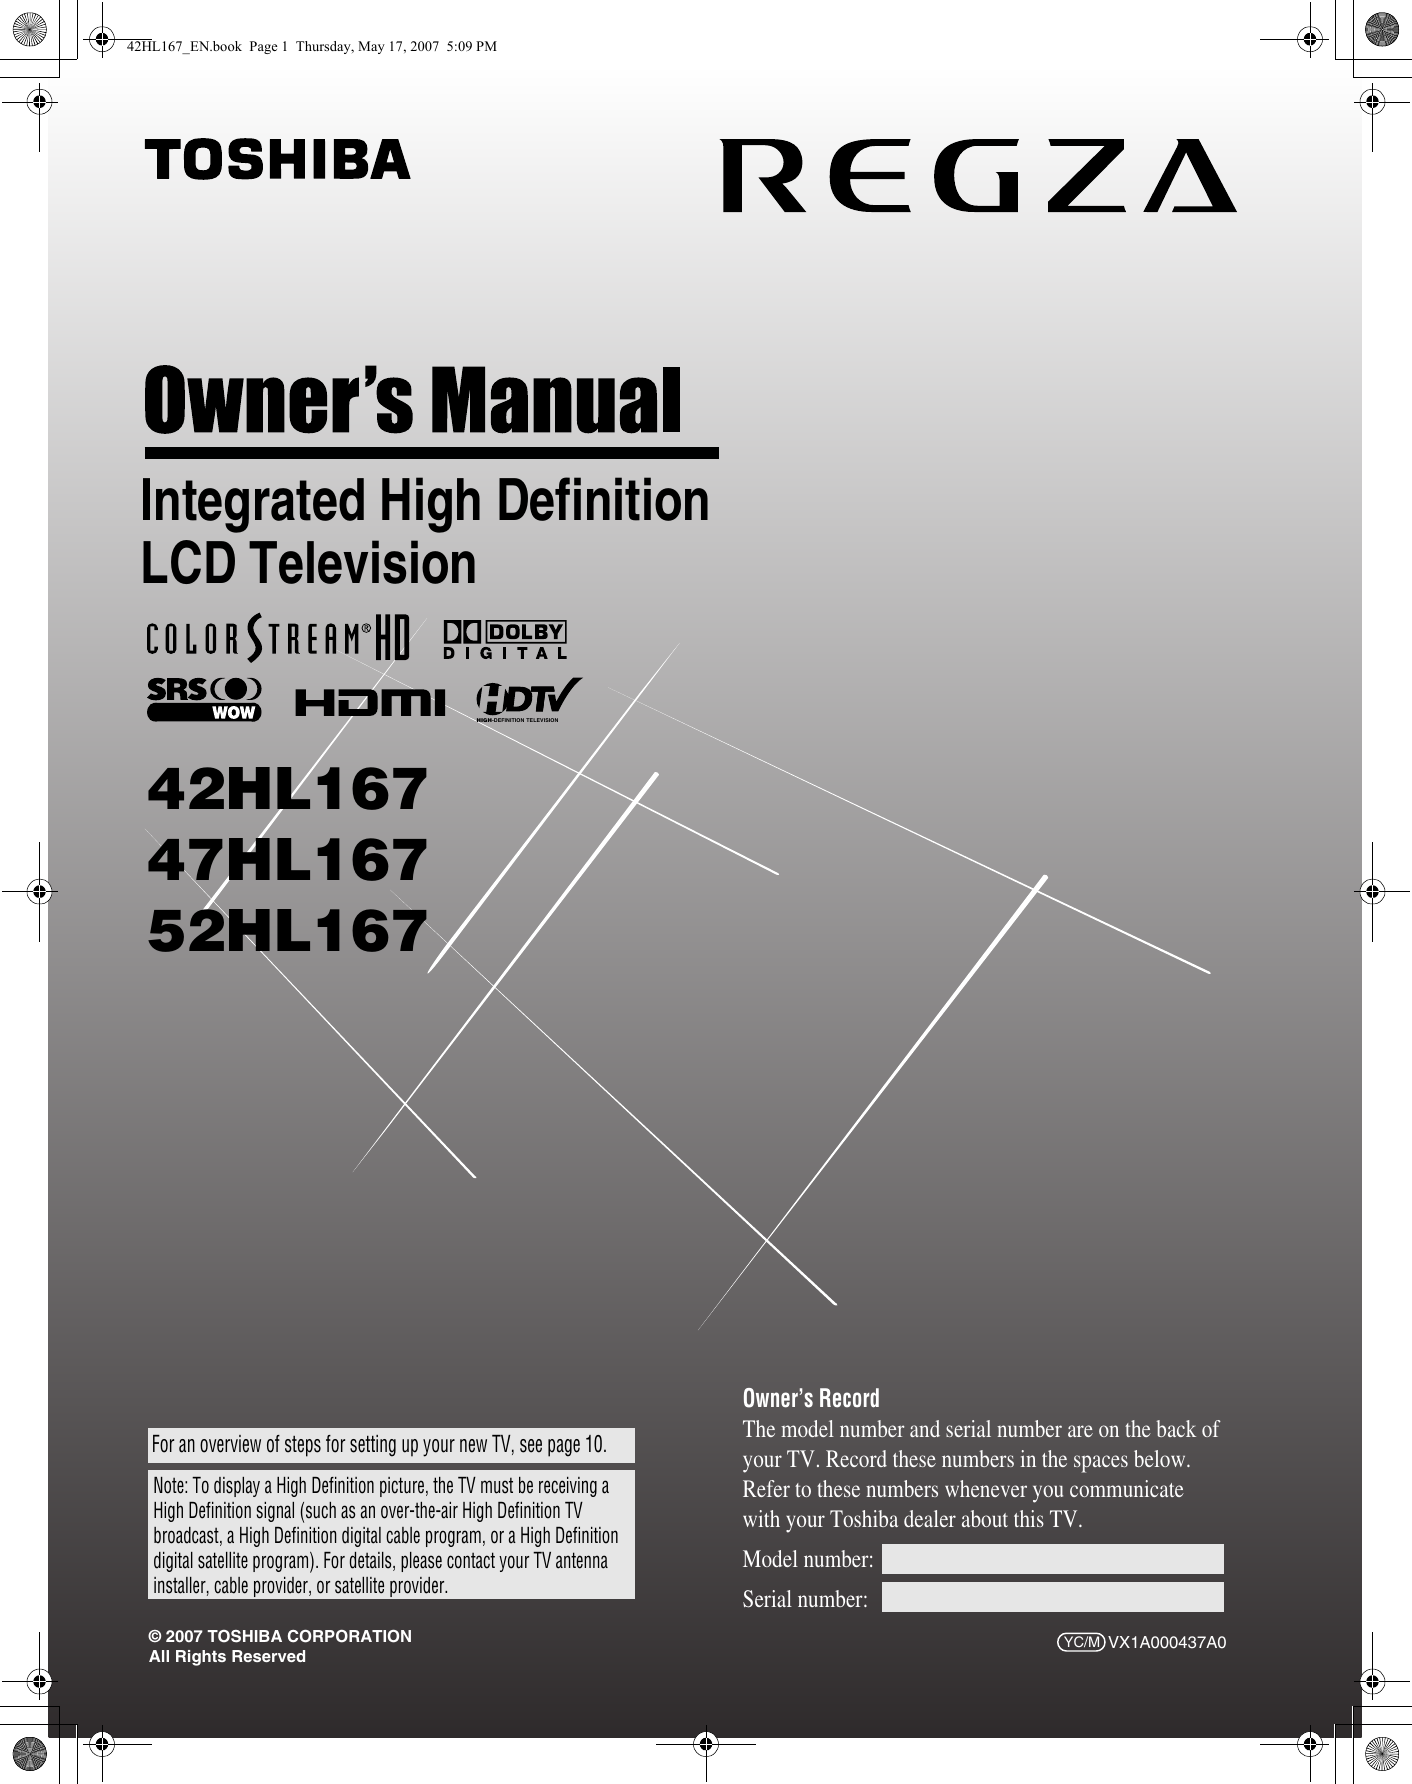 Toshiba regza 42hl167 owners manual ccuart Gallery